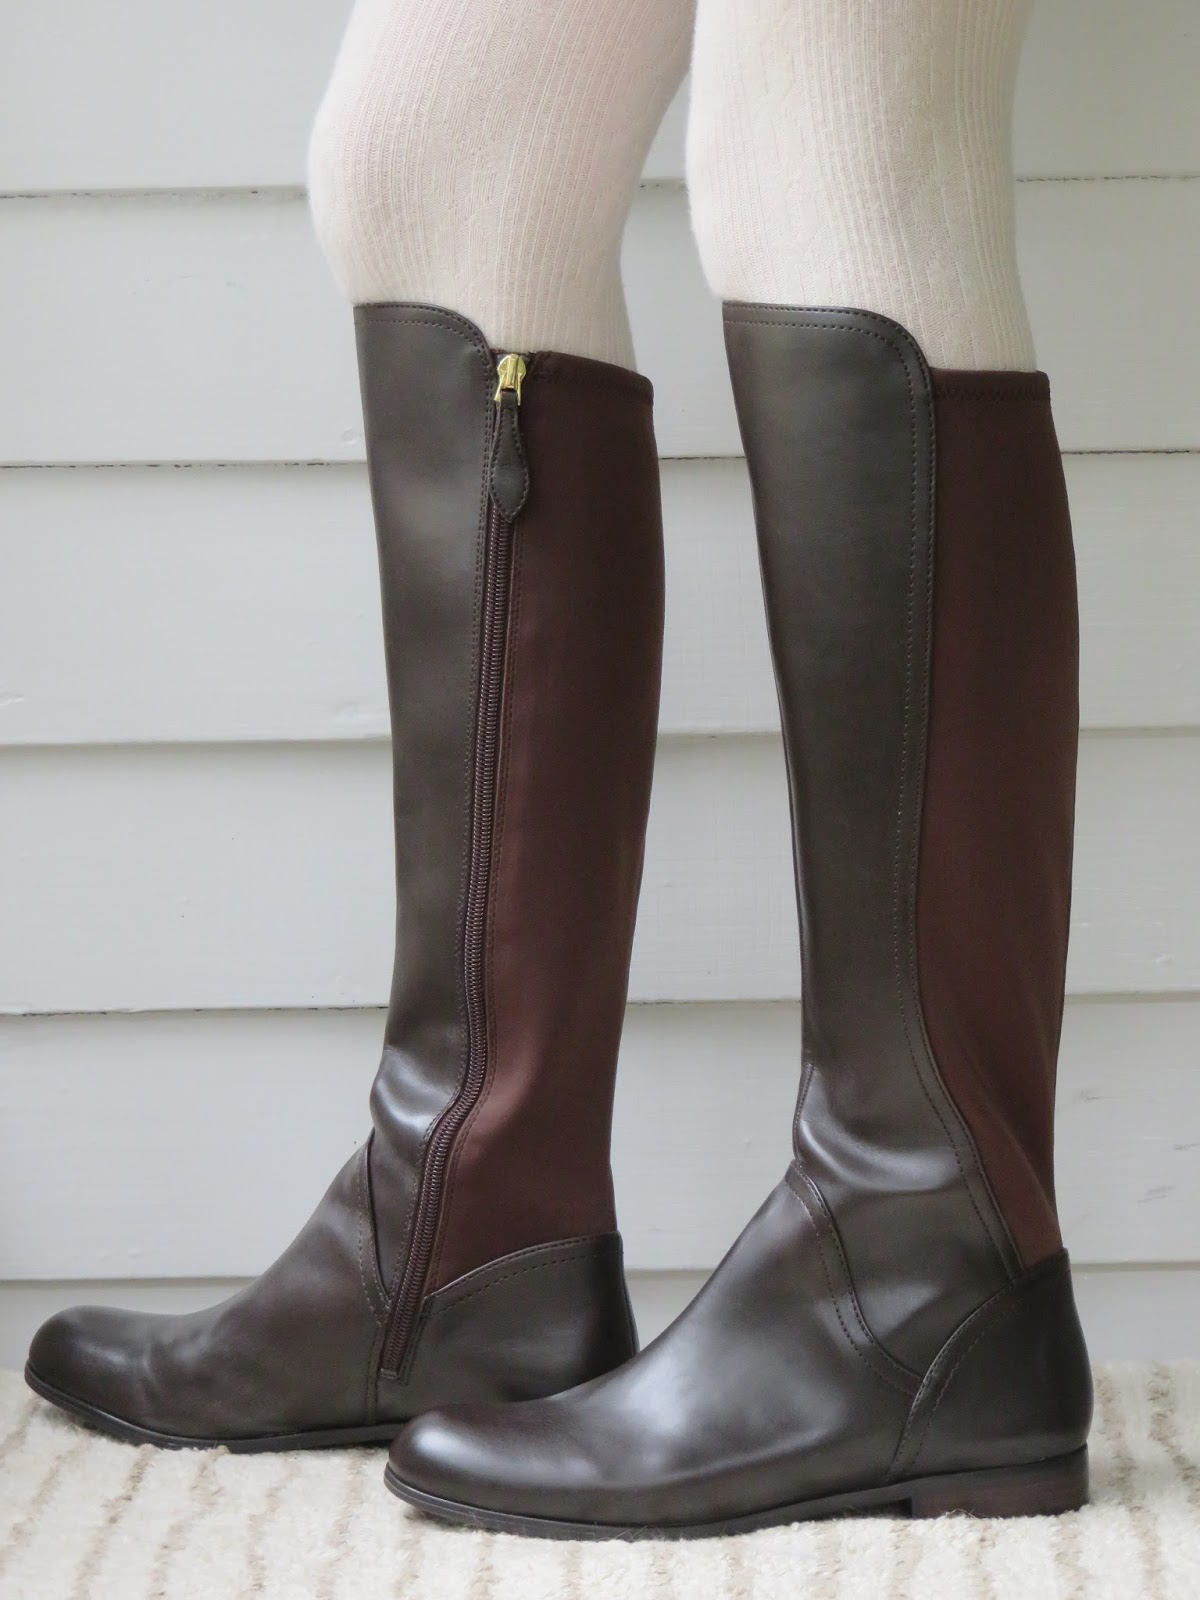 Howdy Slim Riding Boots For Thin Calves Franco Sarto Maleni